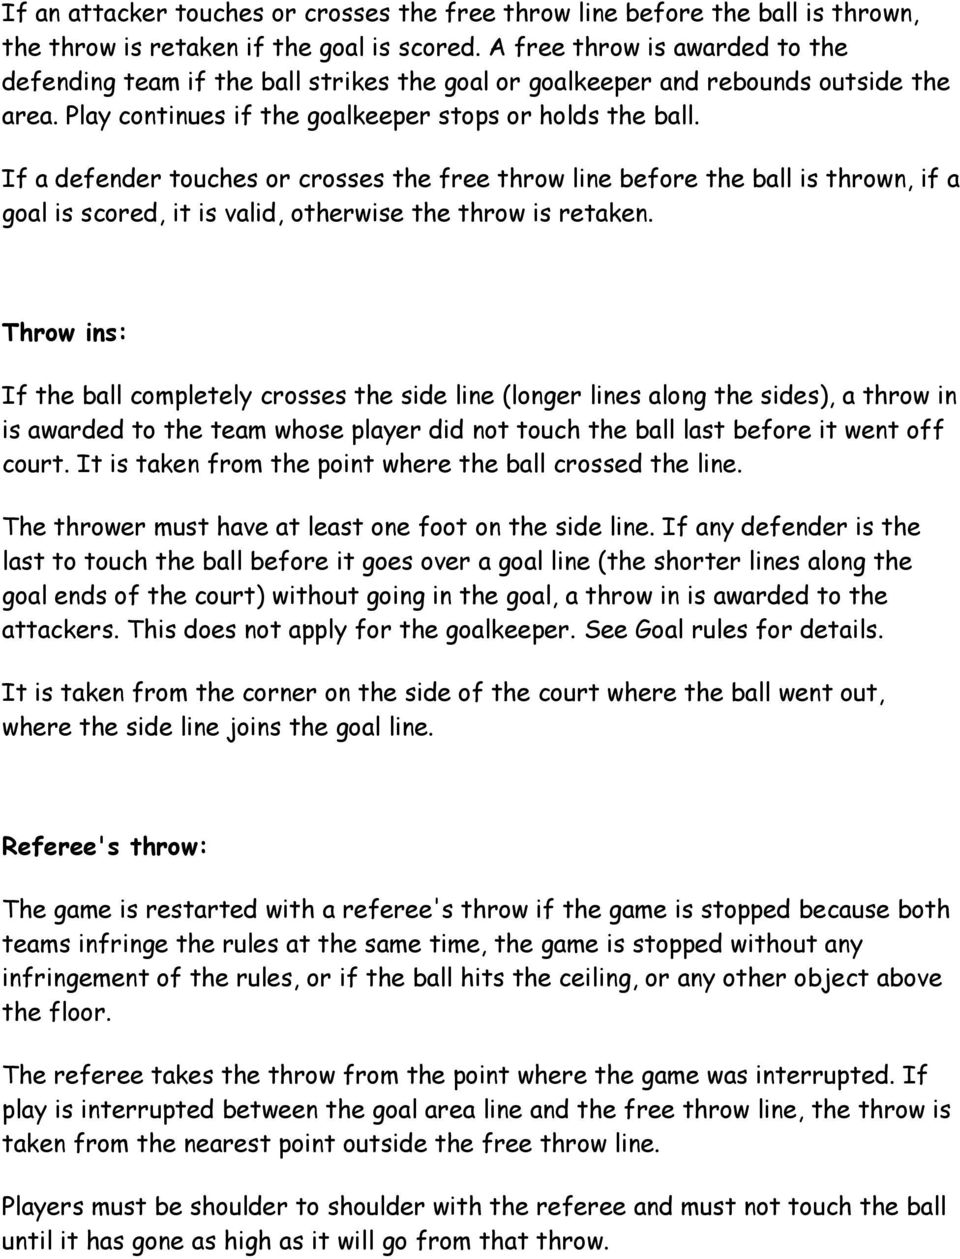 If a defender touches or crosses the free throw line before the ball is thrown, if a goal is scored, it is valid, otherwise the throw is retaken.